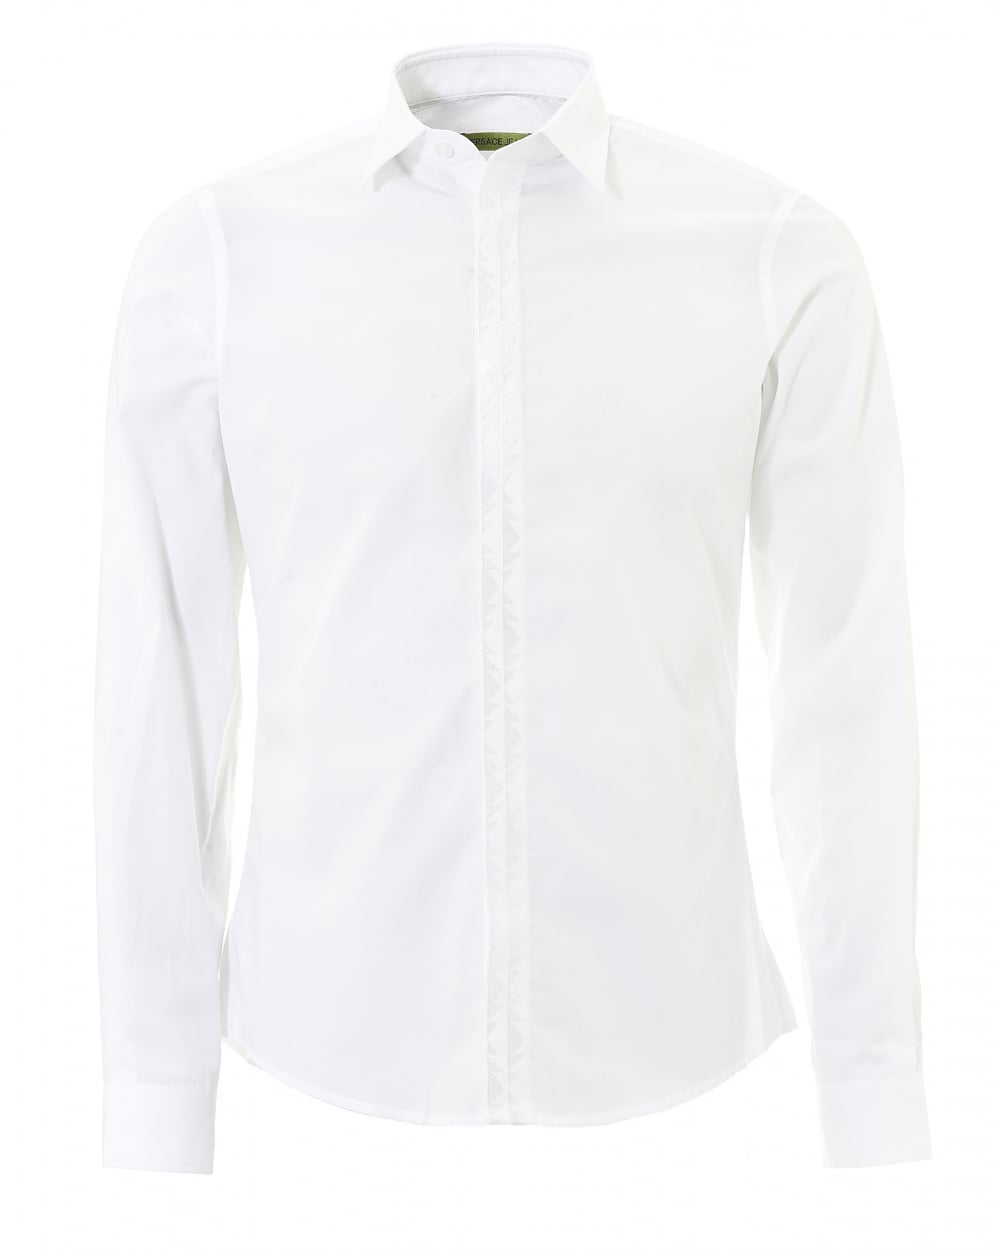 Versace Jeans Mens Plain White Tonal Long Sleeve Collared Shirt fdefffb180a